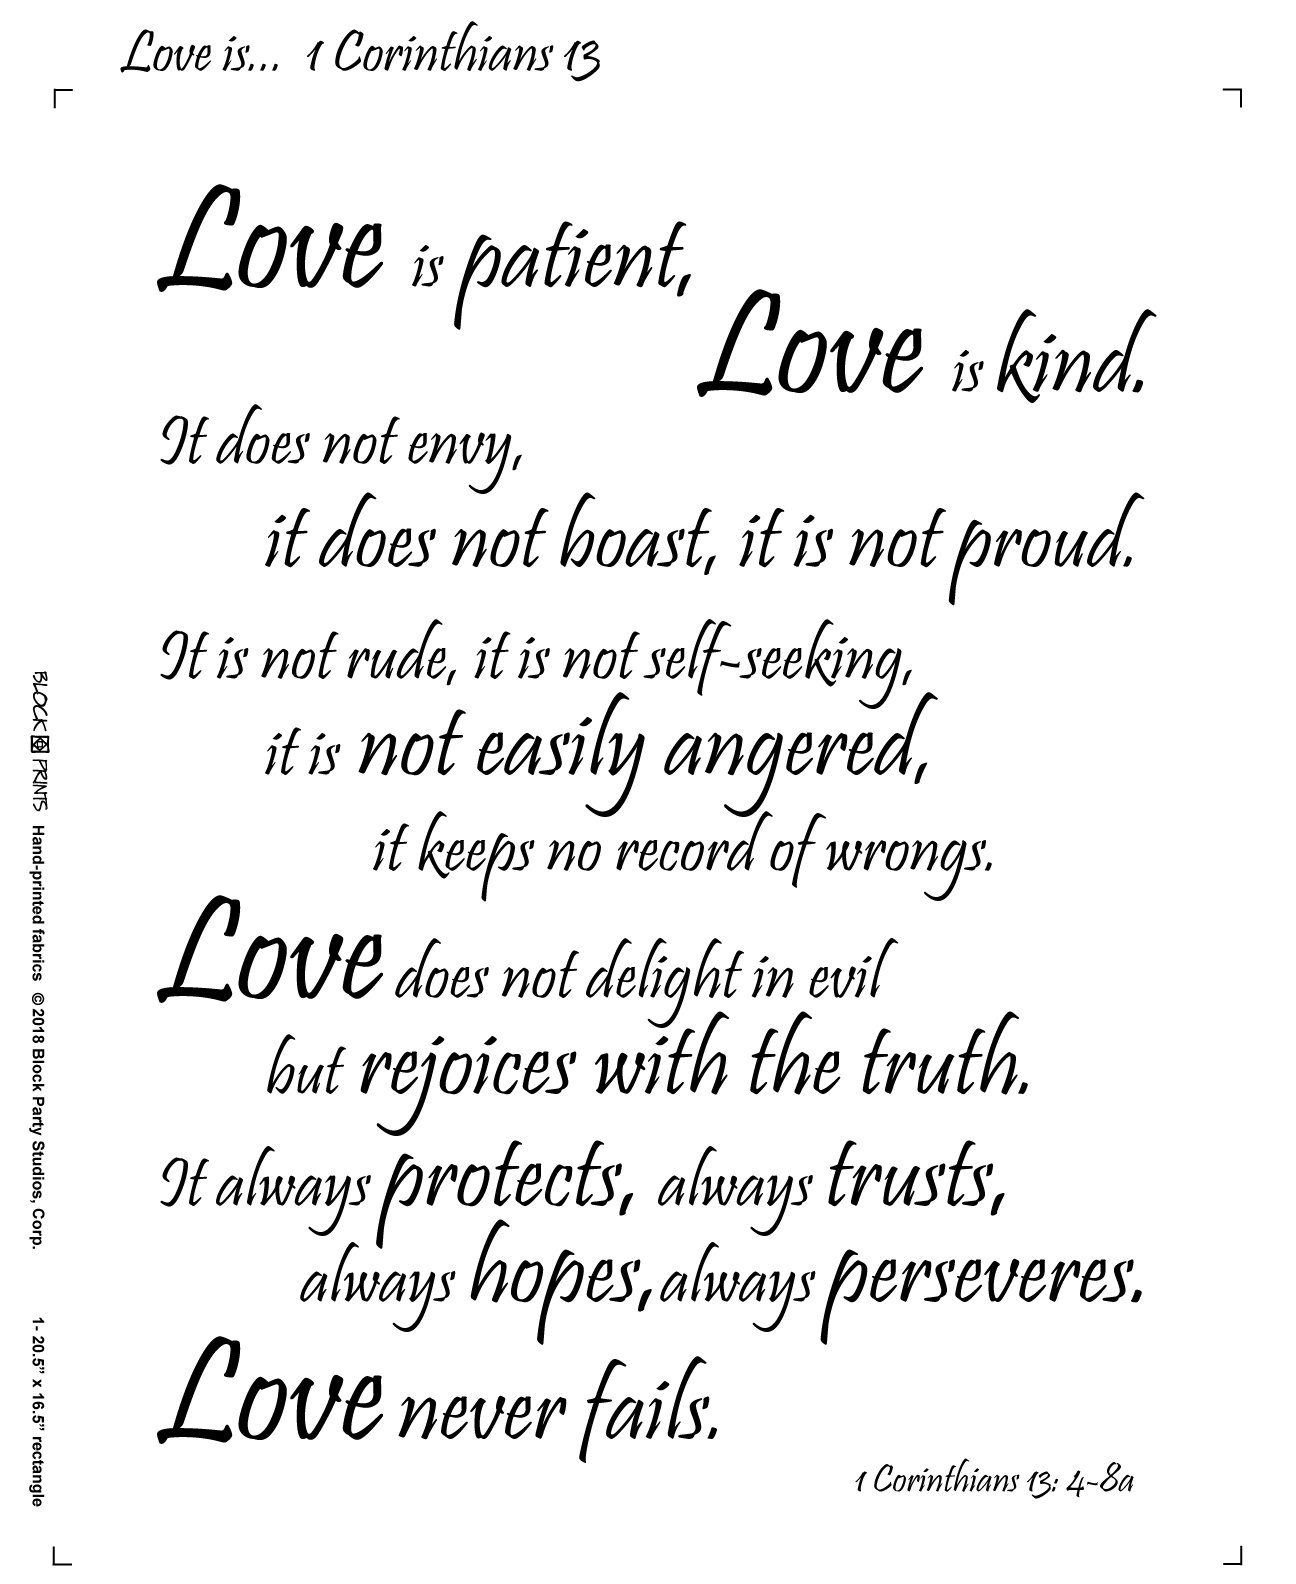 Love Is... 1 Corinthians 13 Fabric Panel